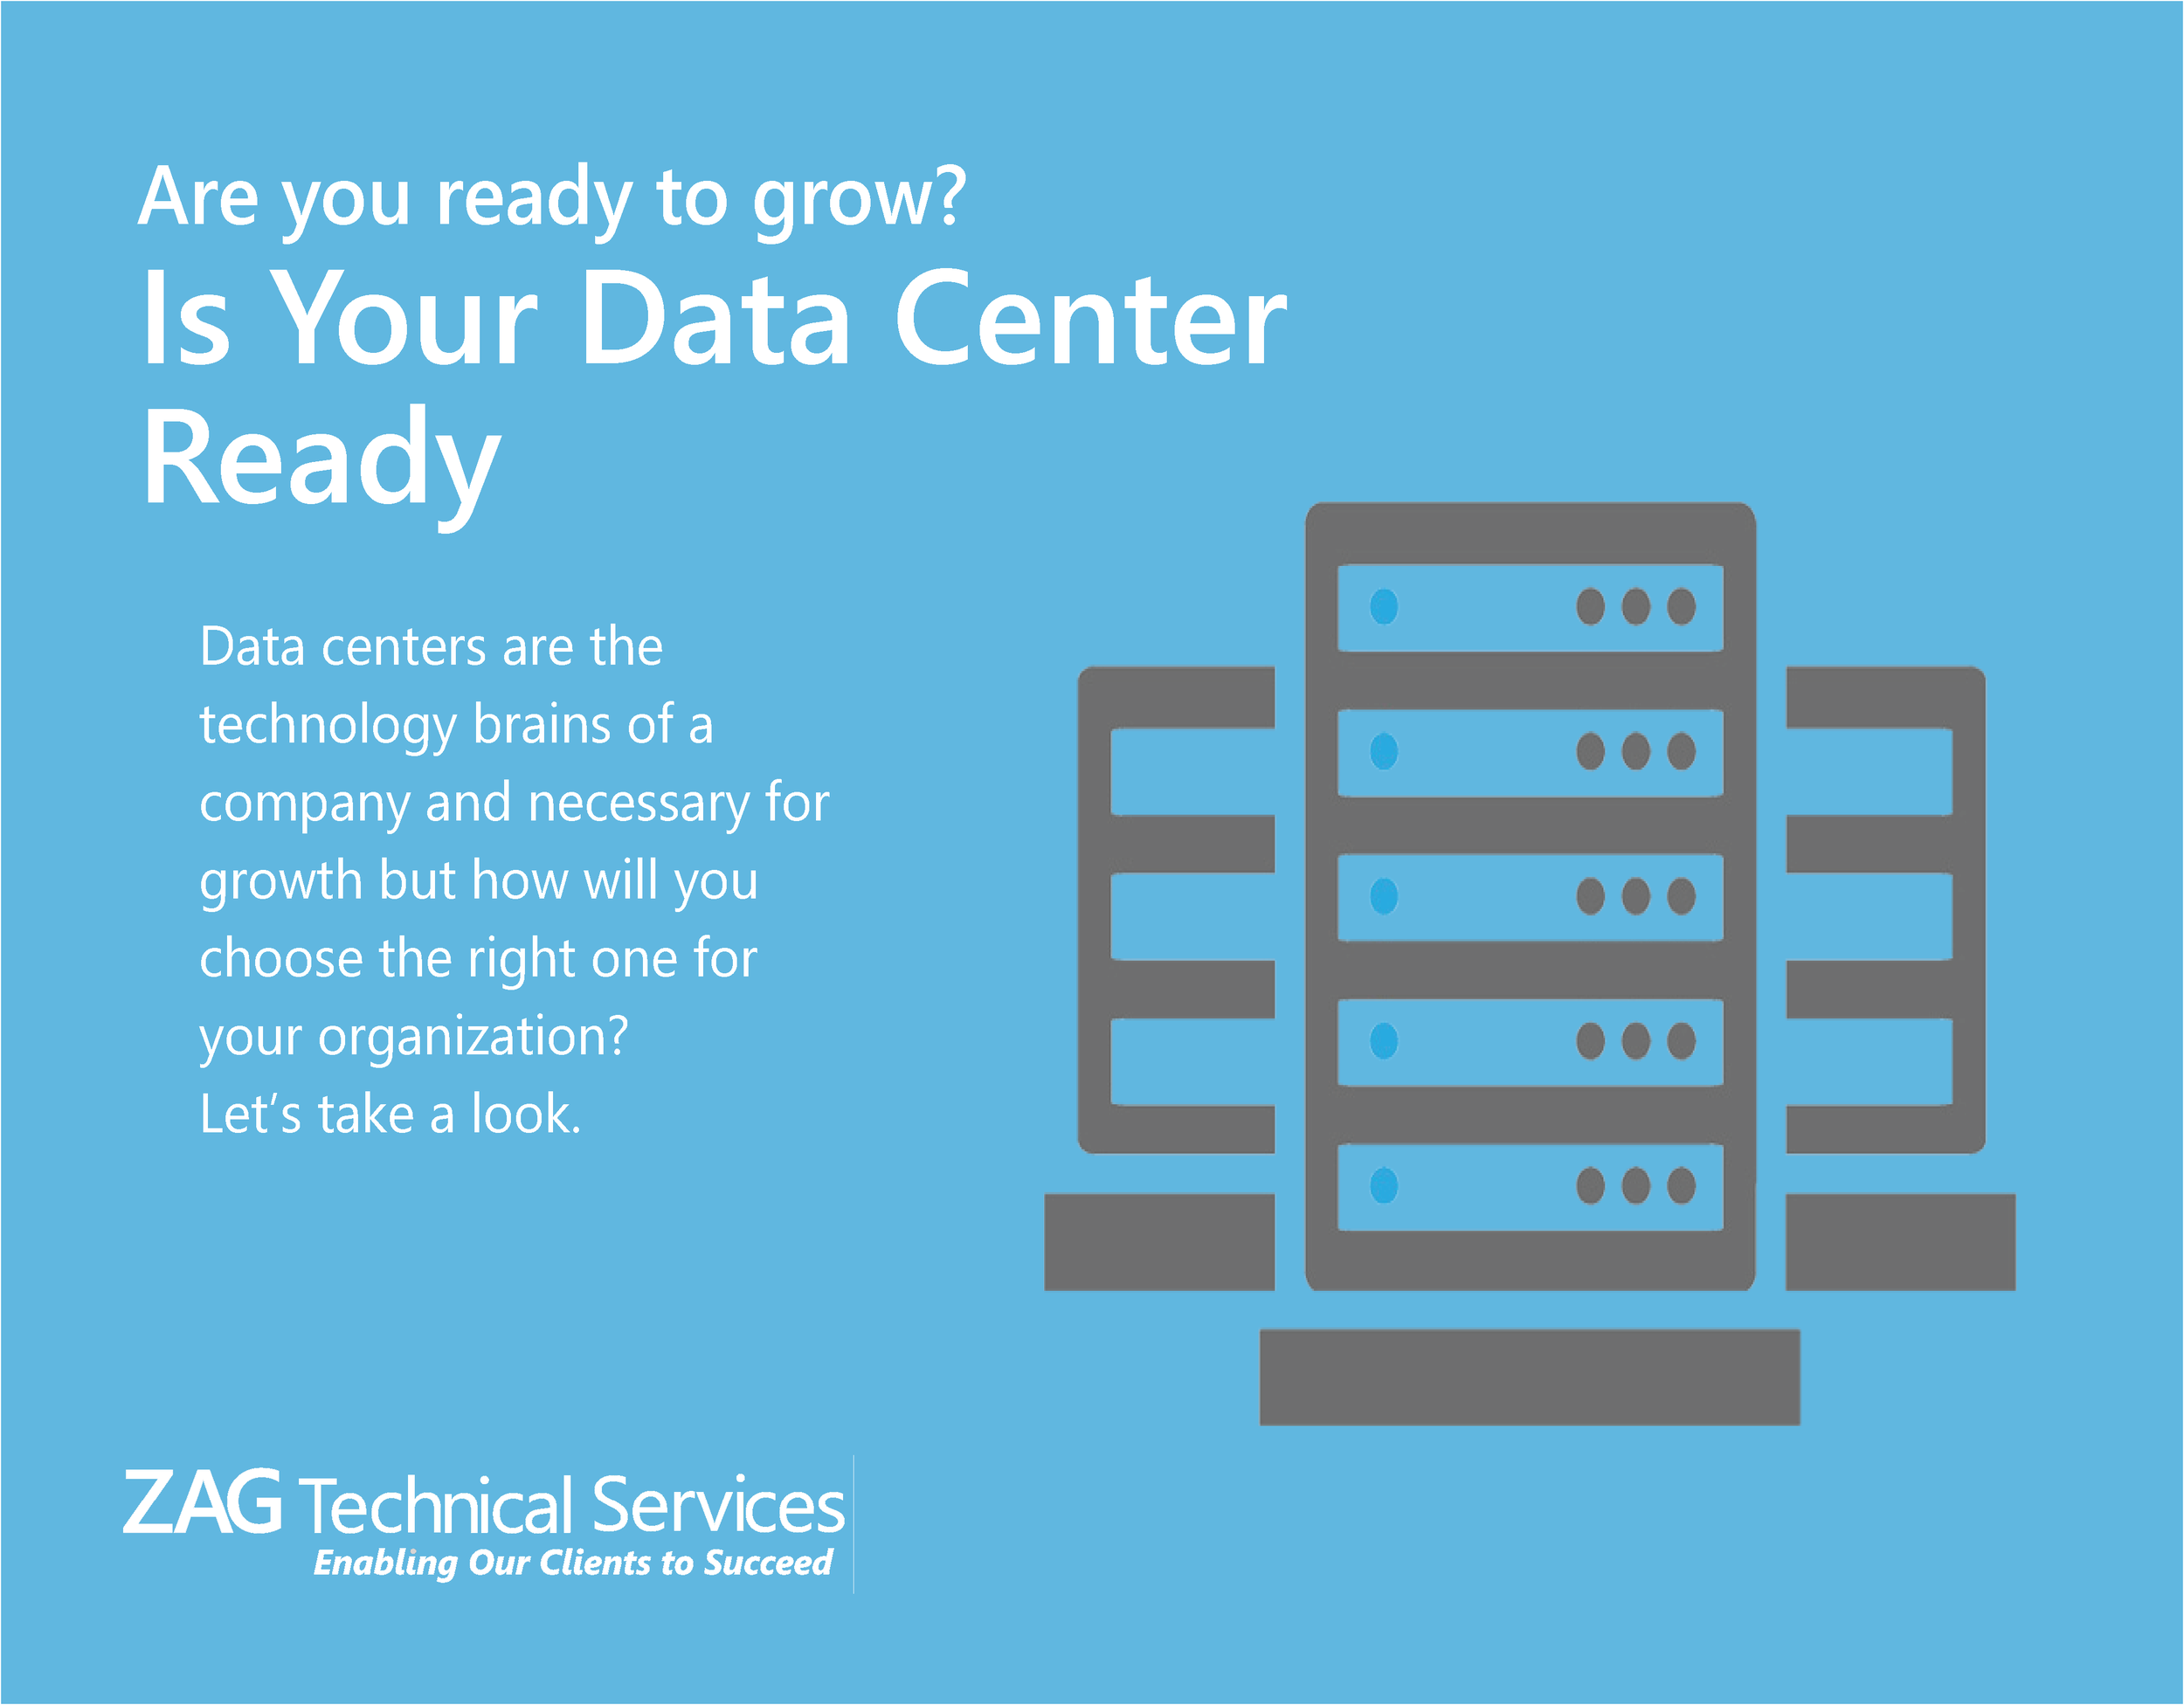 Is your data center ready to support your growth?